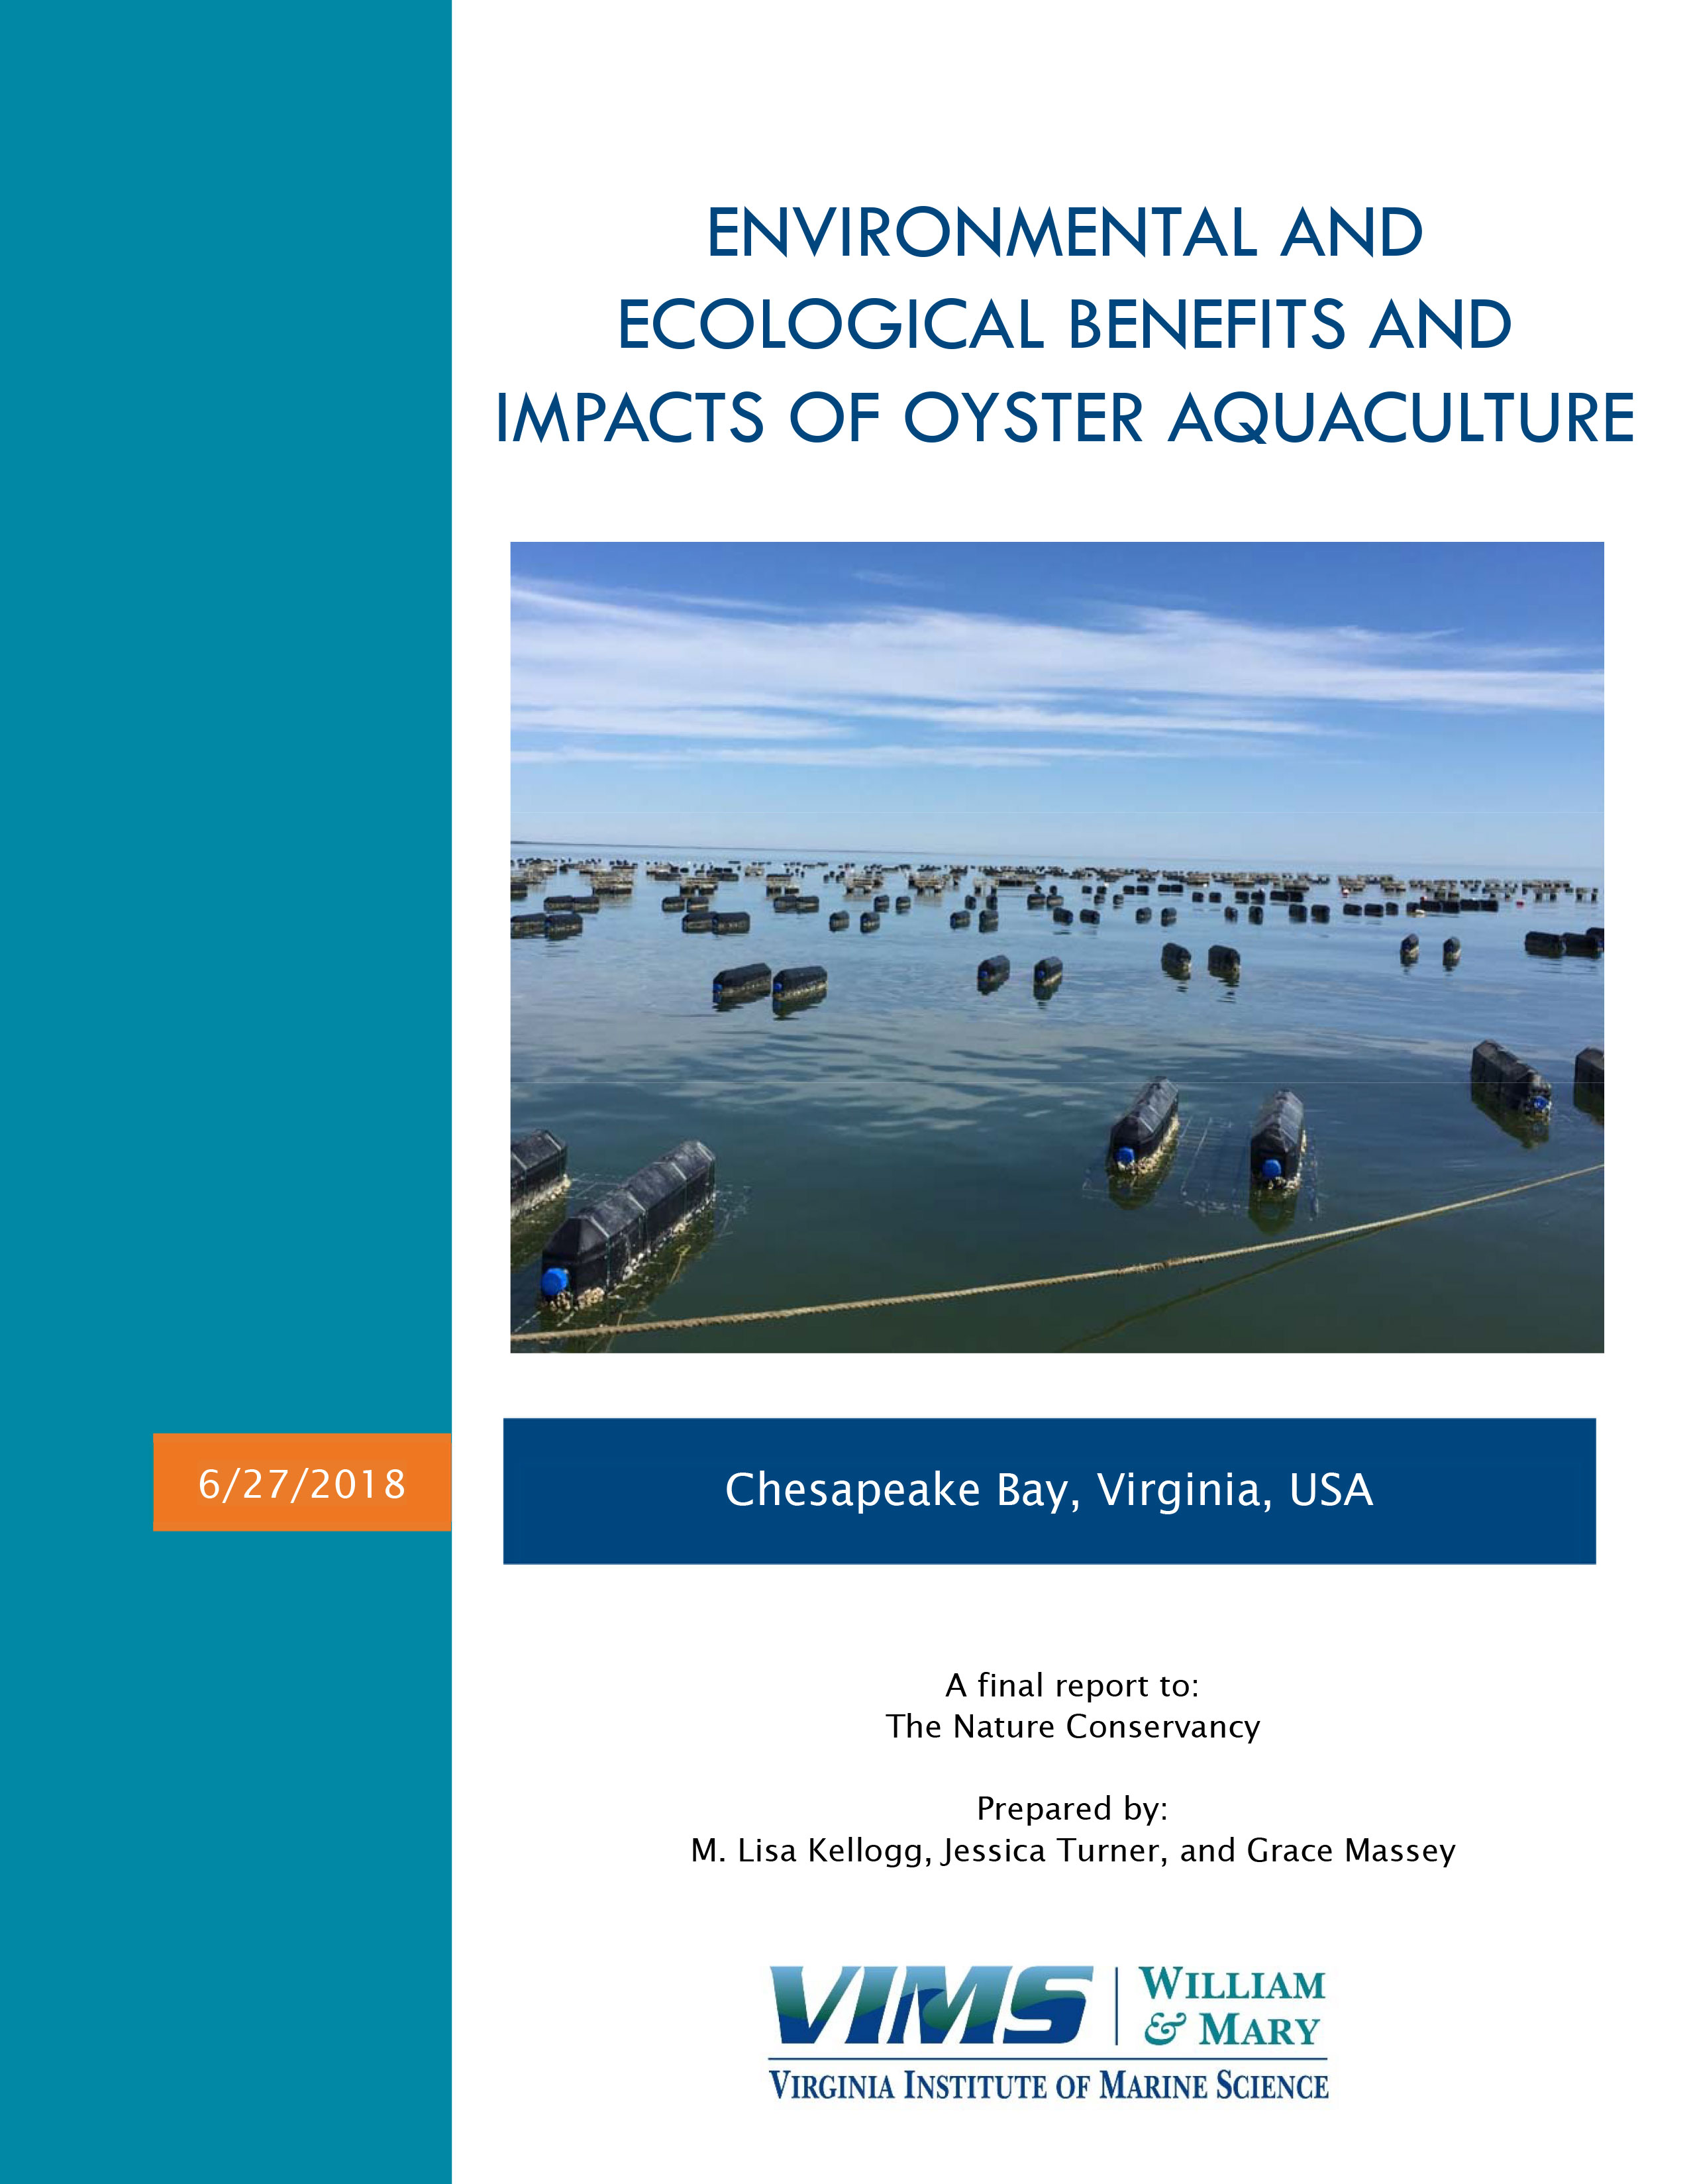 Final report on the environmental and ecological benefits and impacts of oyster aquaculture.